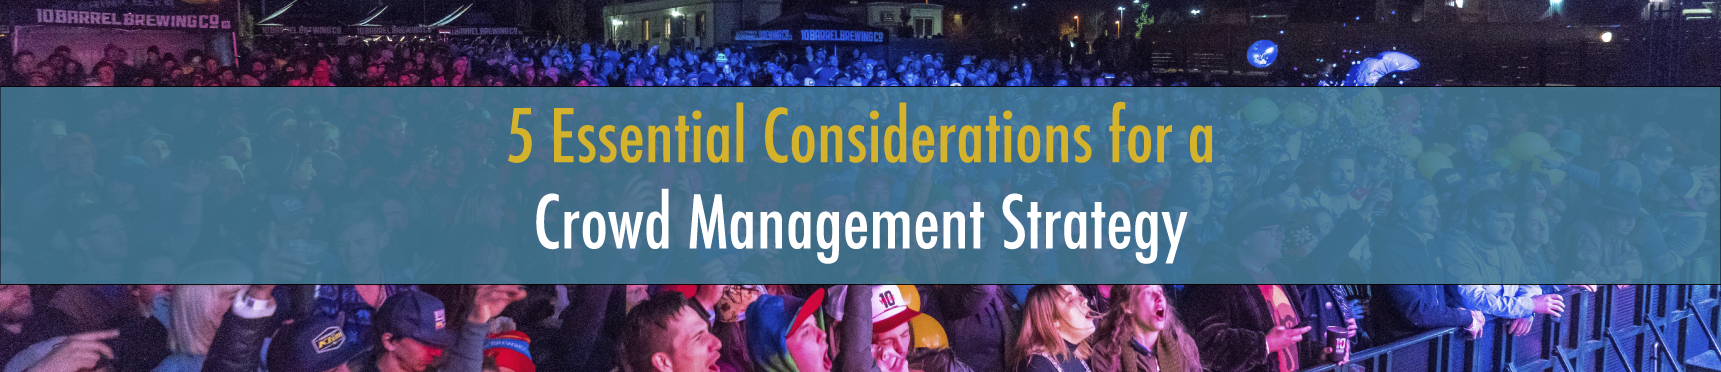 5 Essential Considerations for a Crowd Management Strategy